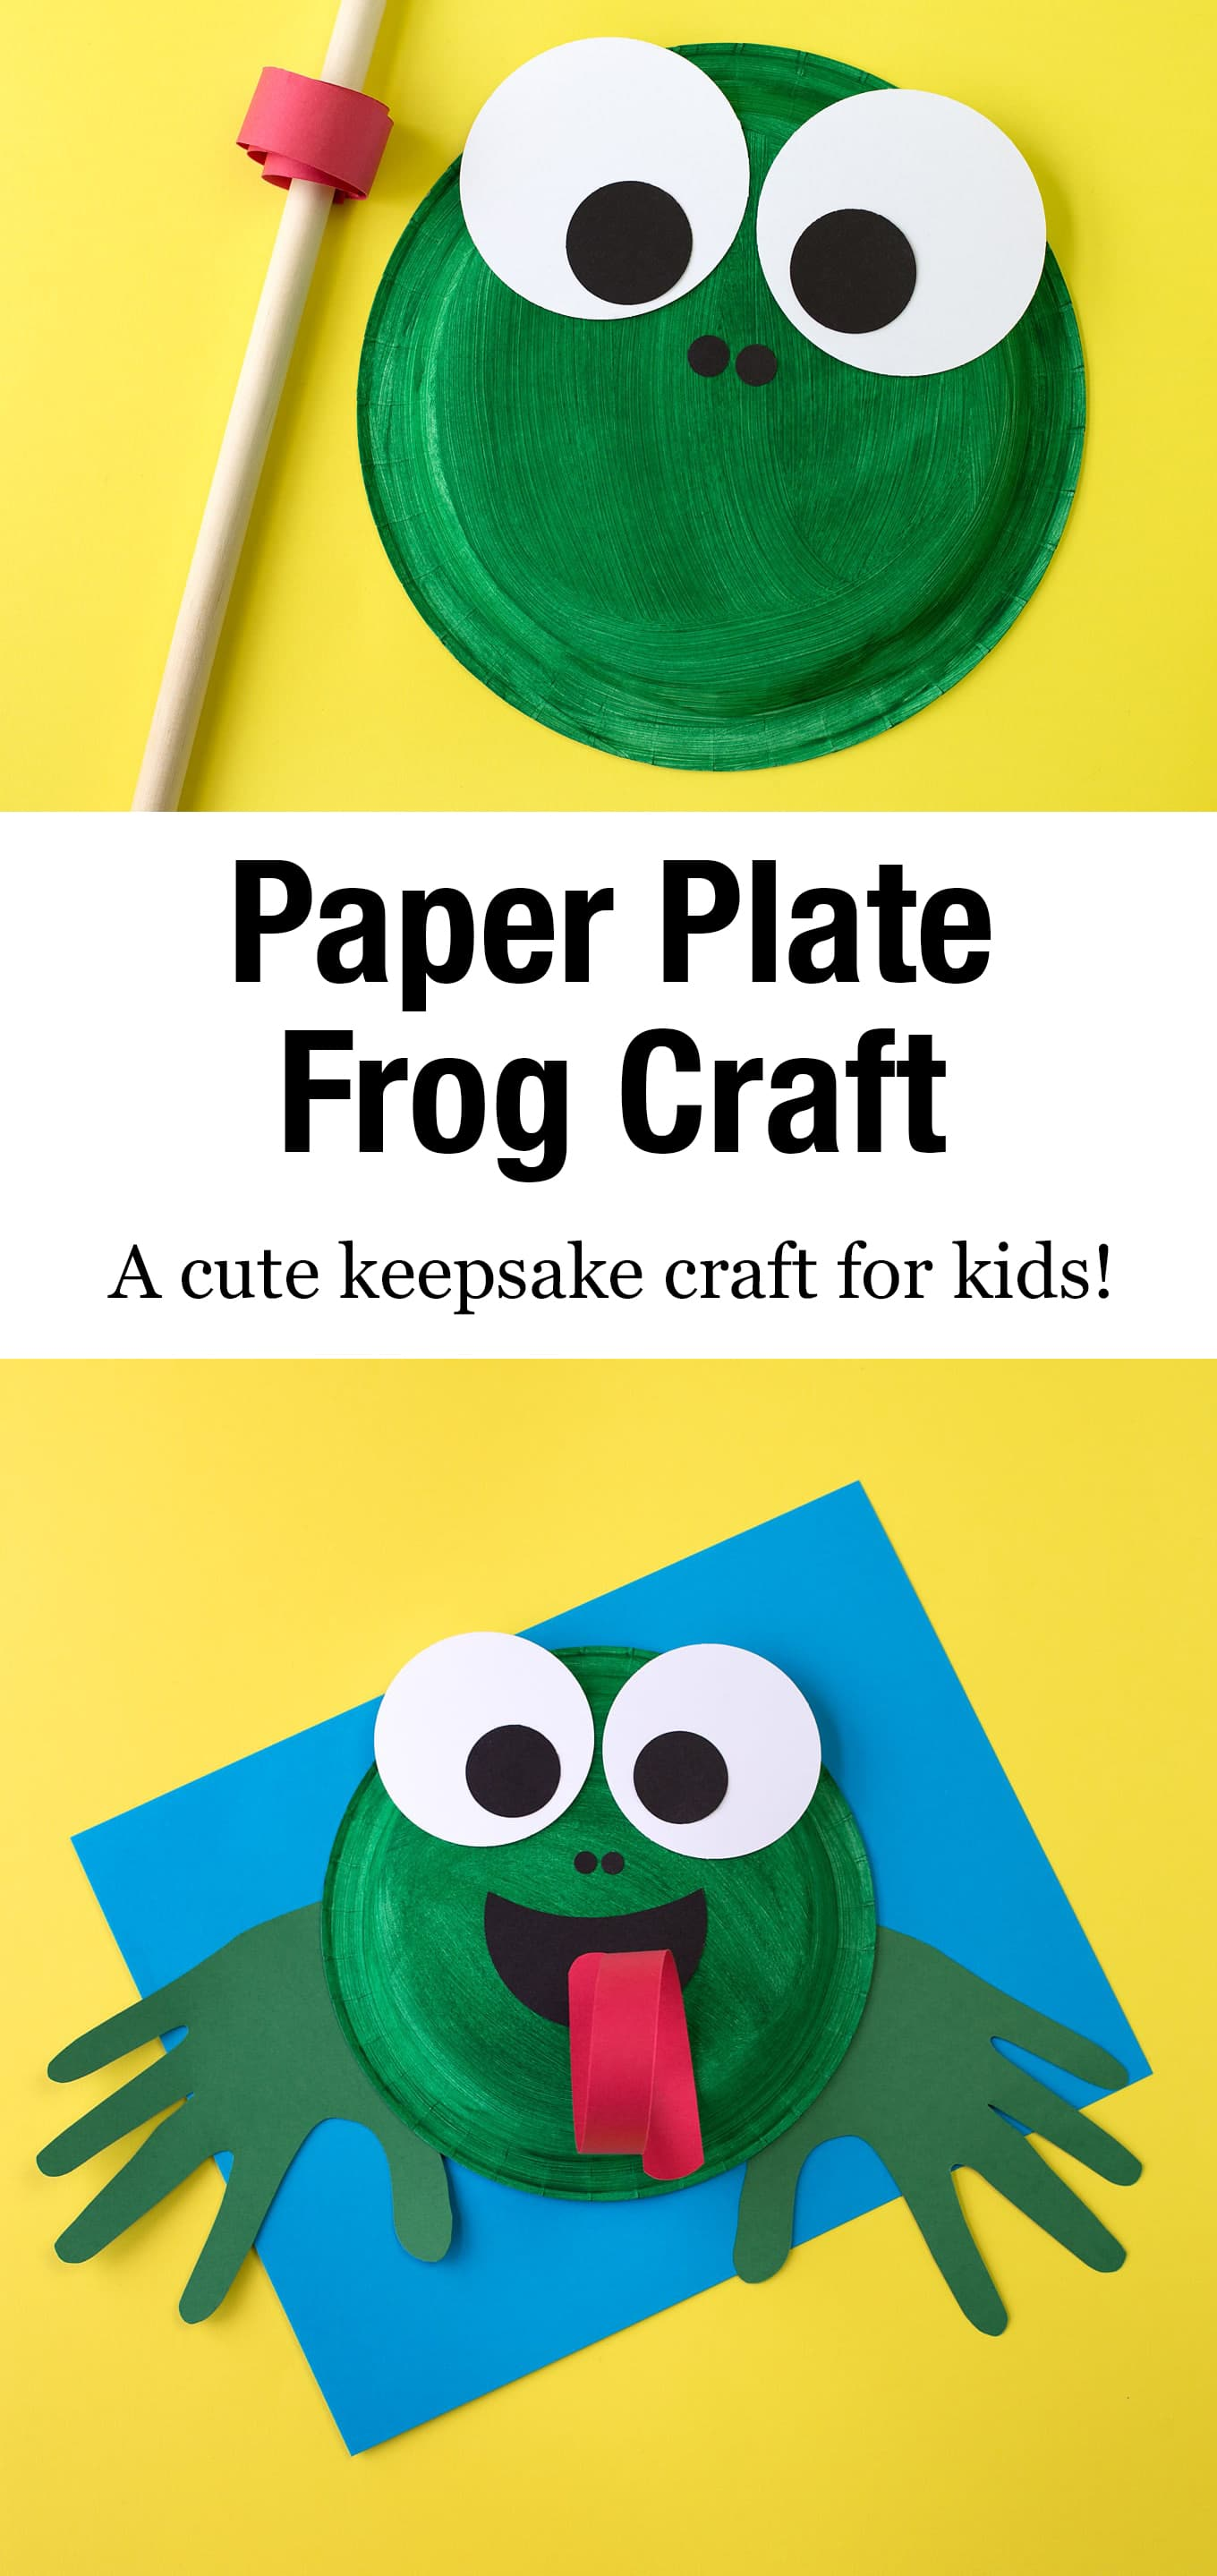 Learn how to make an adorable and fun Paper Plate Frog Craft for summer. This easy frog craft isperfect for helping kids, especially preschoolers, learn all about the life cycle of frogs and toads. #paperplatefrog #preschool #frogcraft #forkids #frogcraftsprescool #easy via @firefliesandmudpies